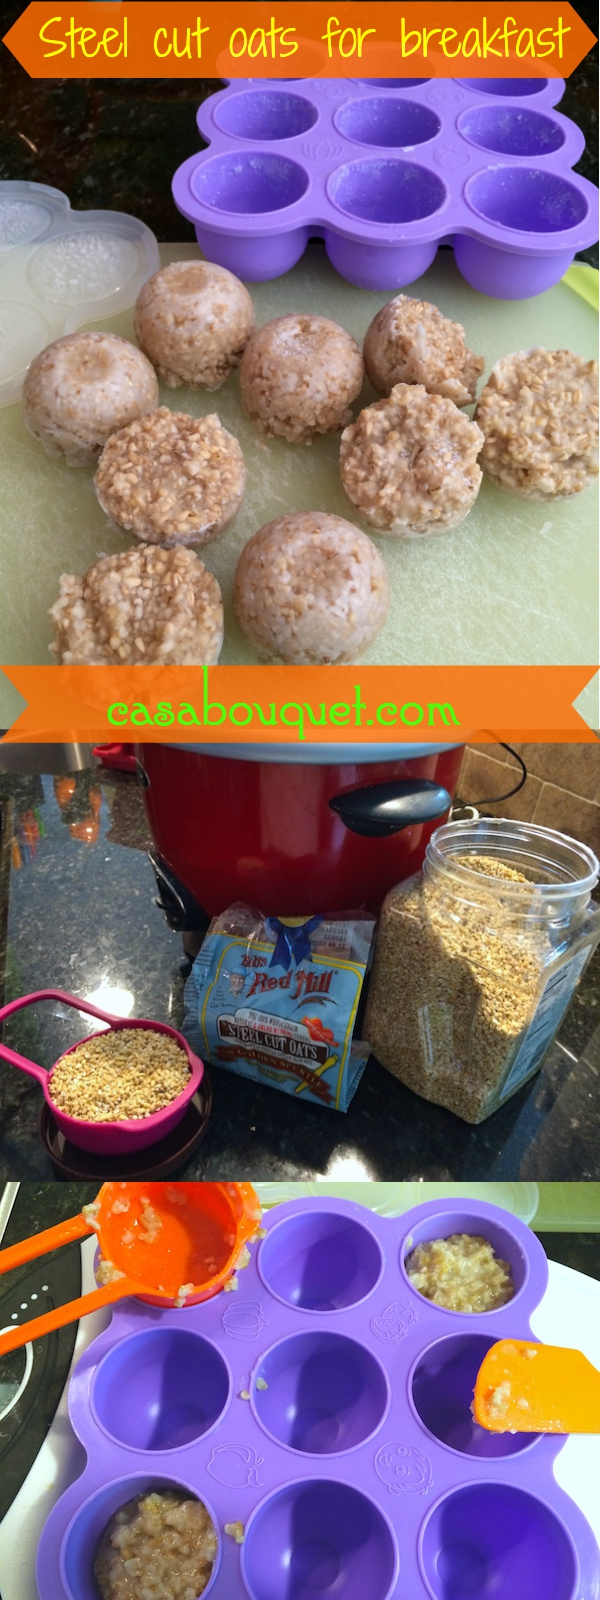 steel cut oats recipe makes frozen pucks for quick breakfast